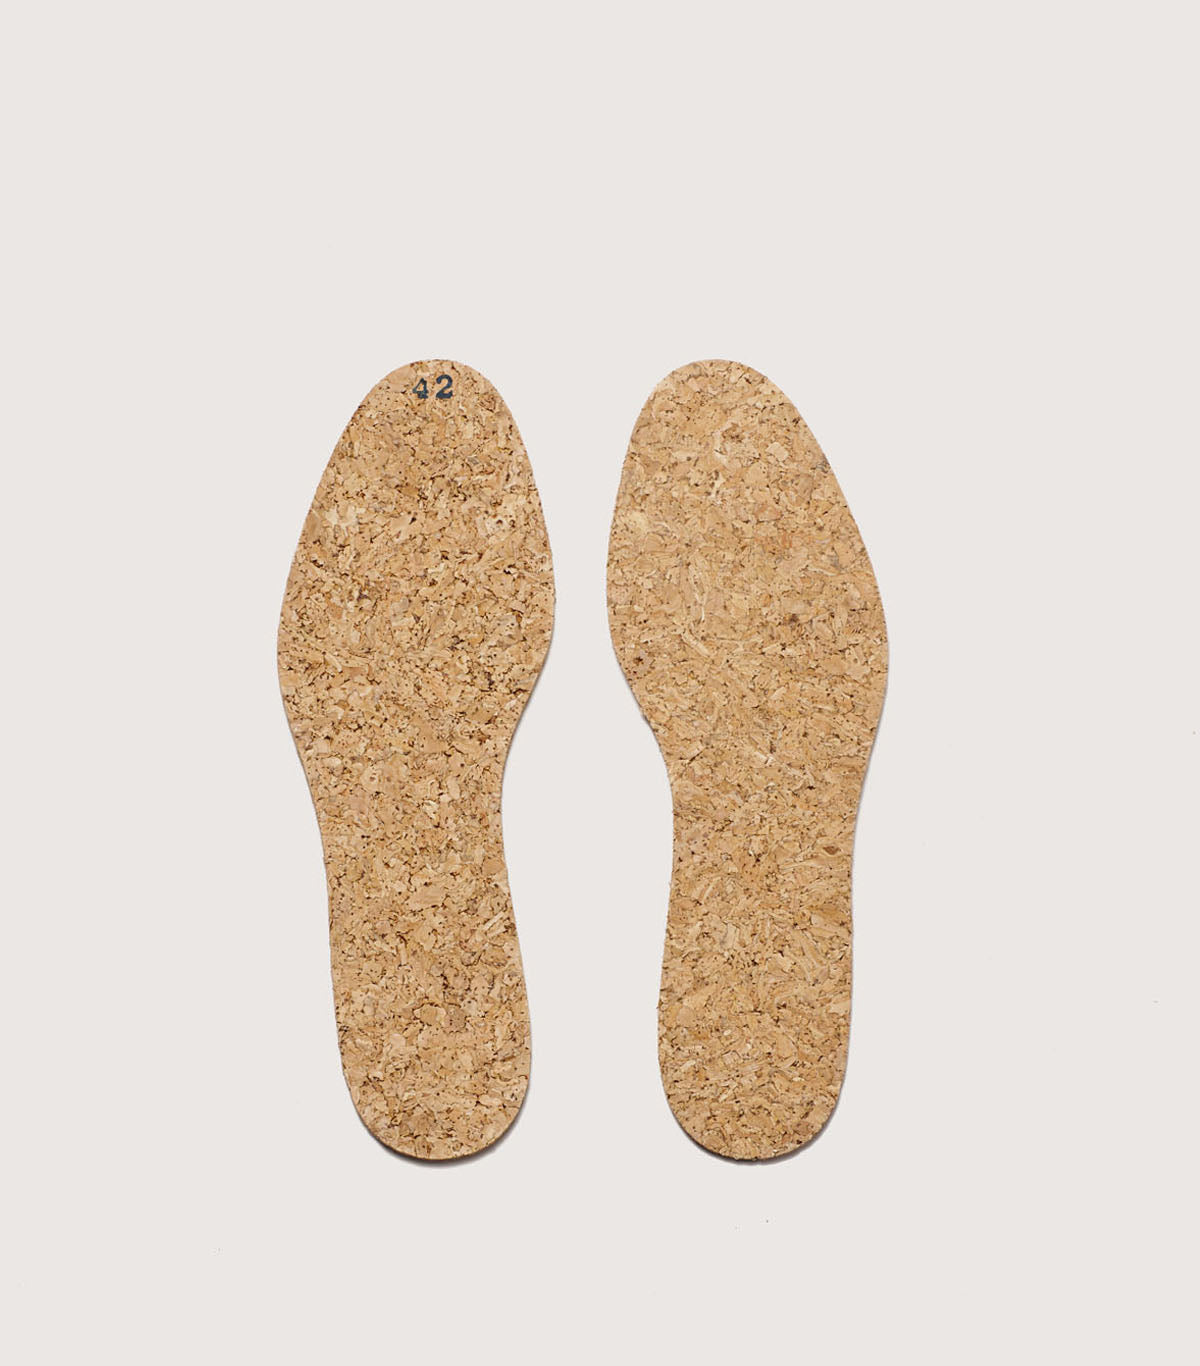 MEN'S CORK FOOTBED - SCMFFBC_NAT